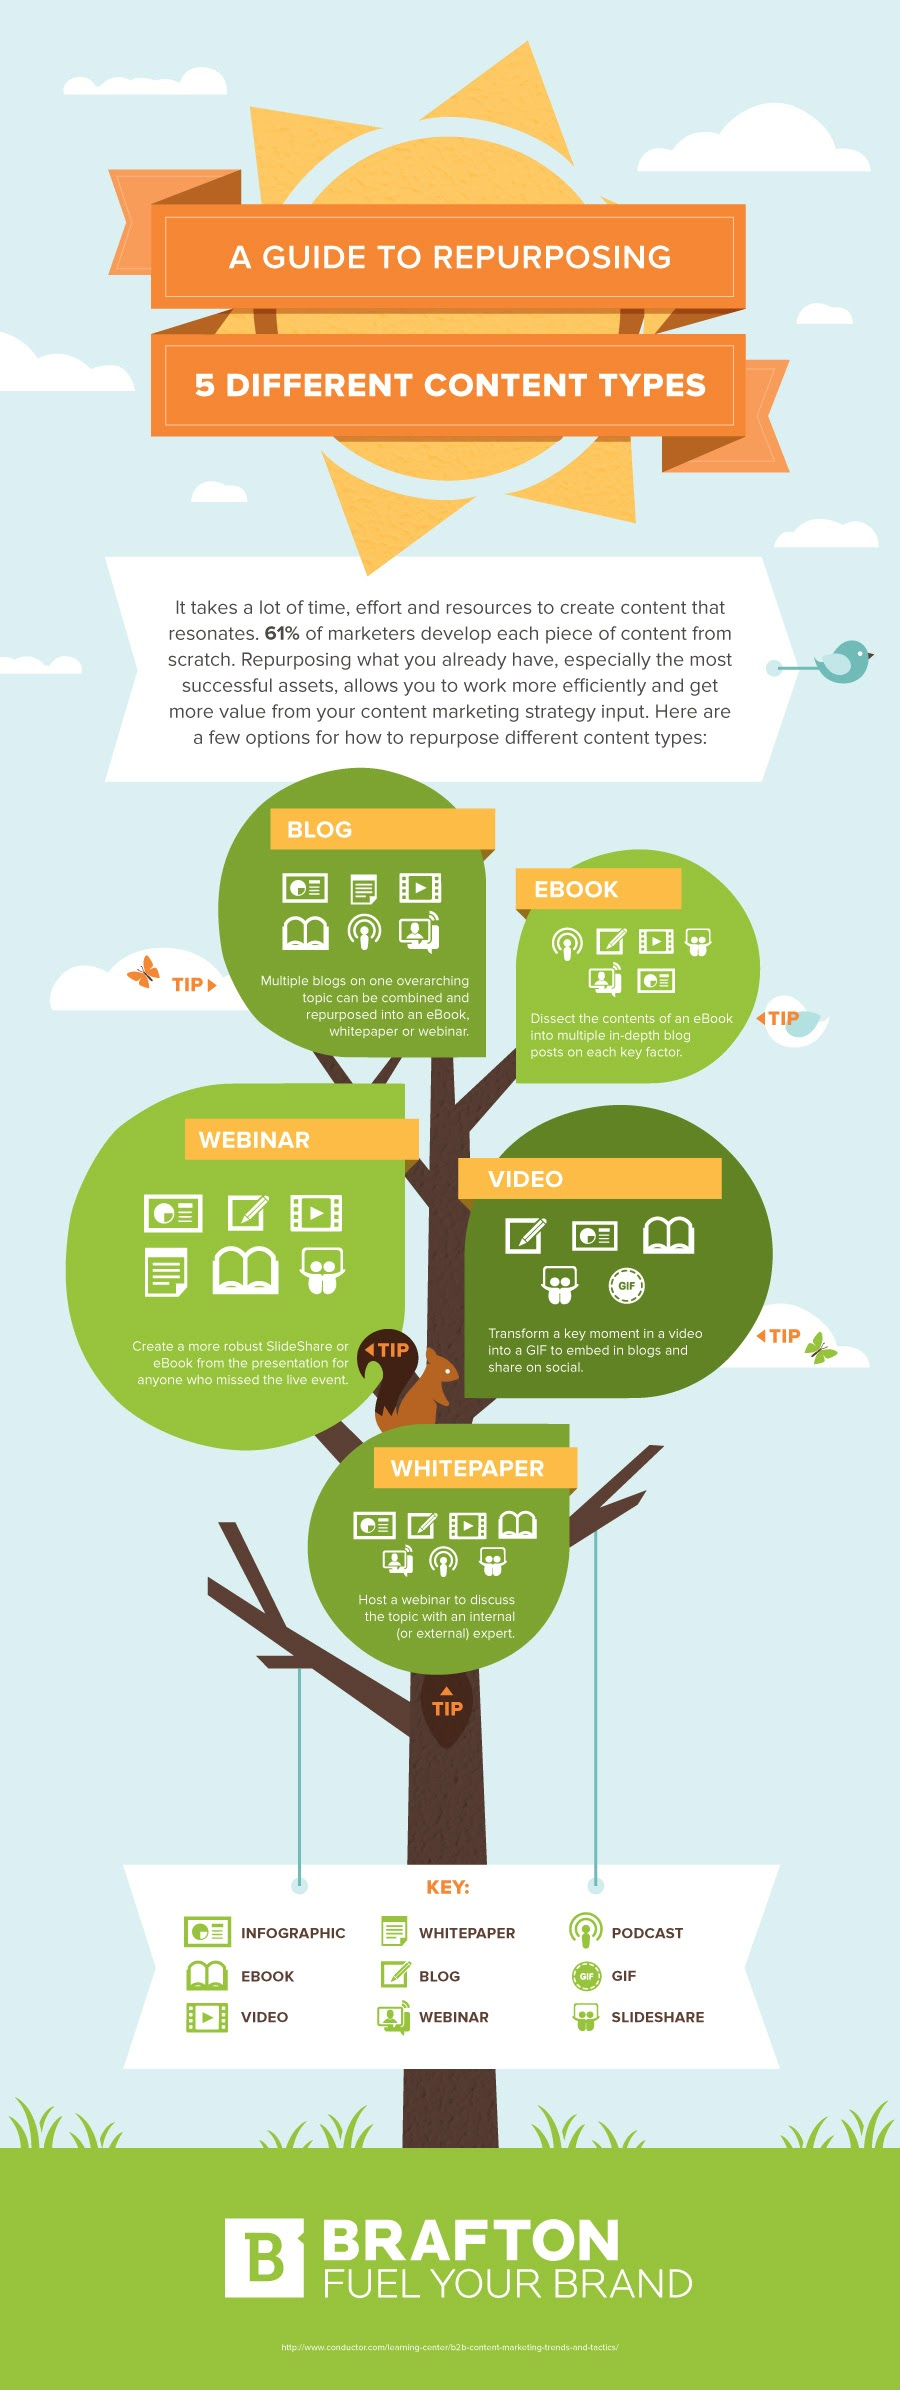 A Guide to Repurposing 5 Different Content Types - #Infographic